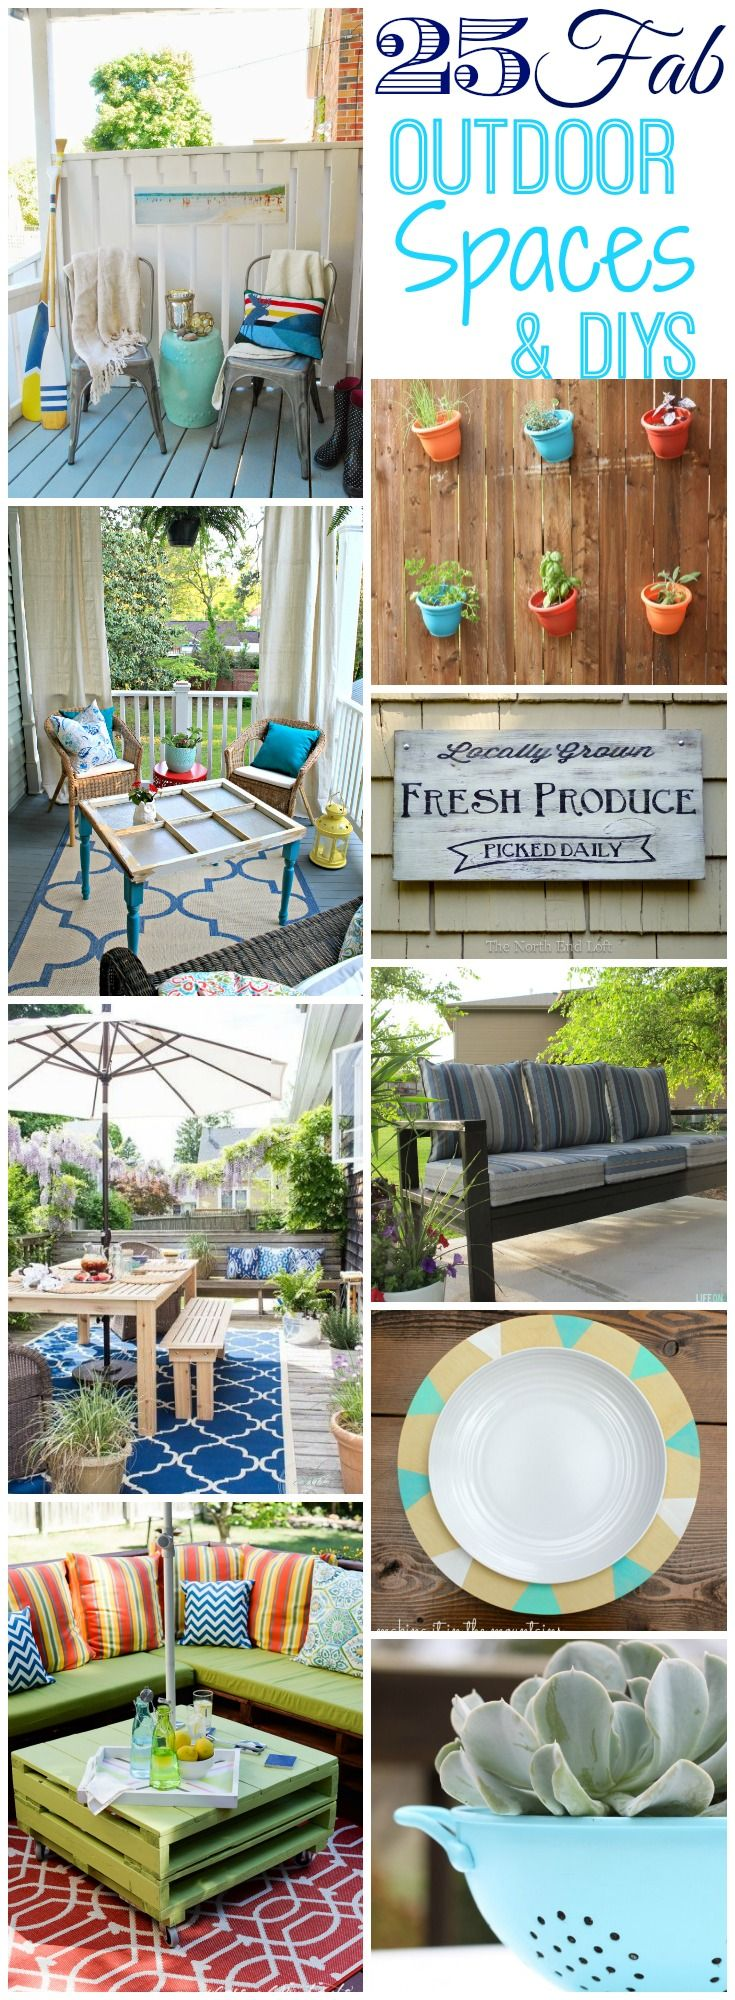 Diy Backyard Projects 732 Best Images About Gardening And Outdoor Projects On Pinterest